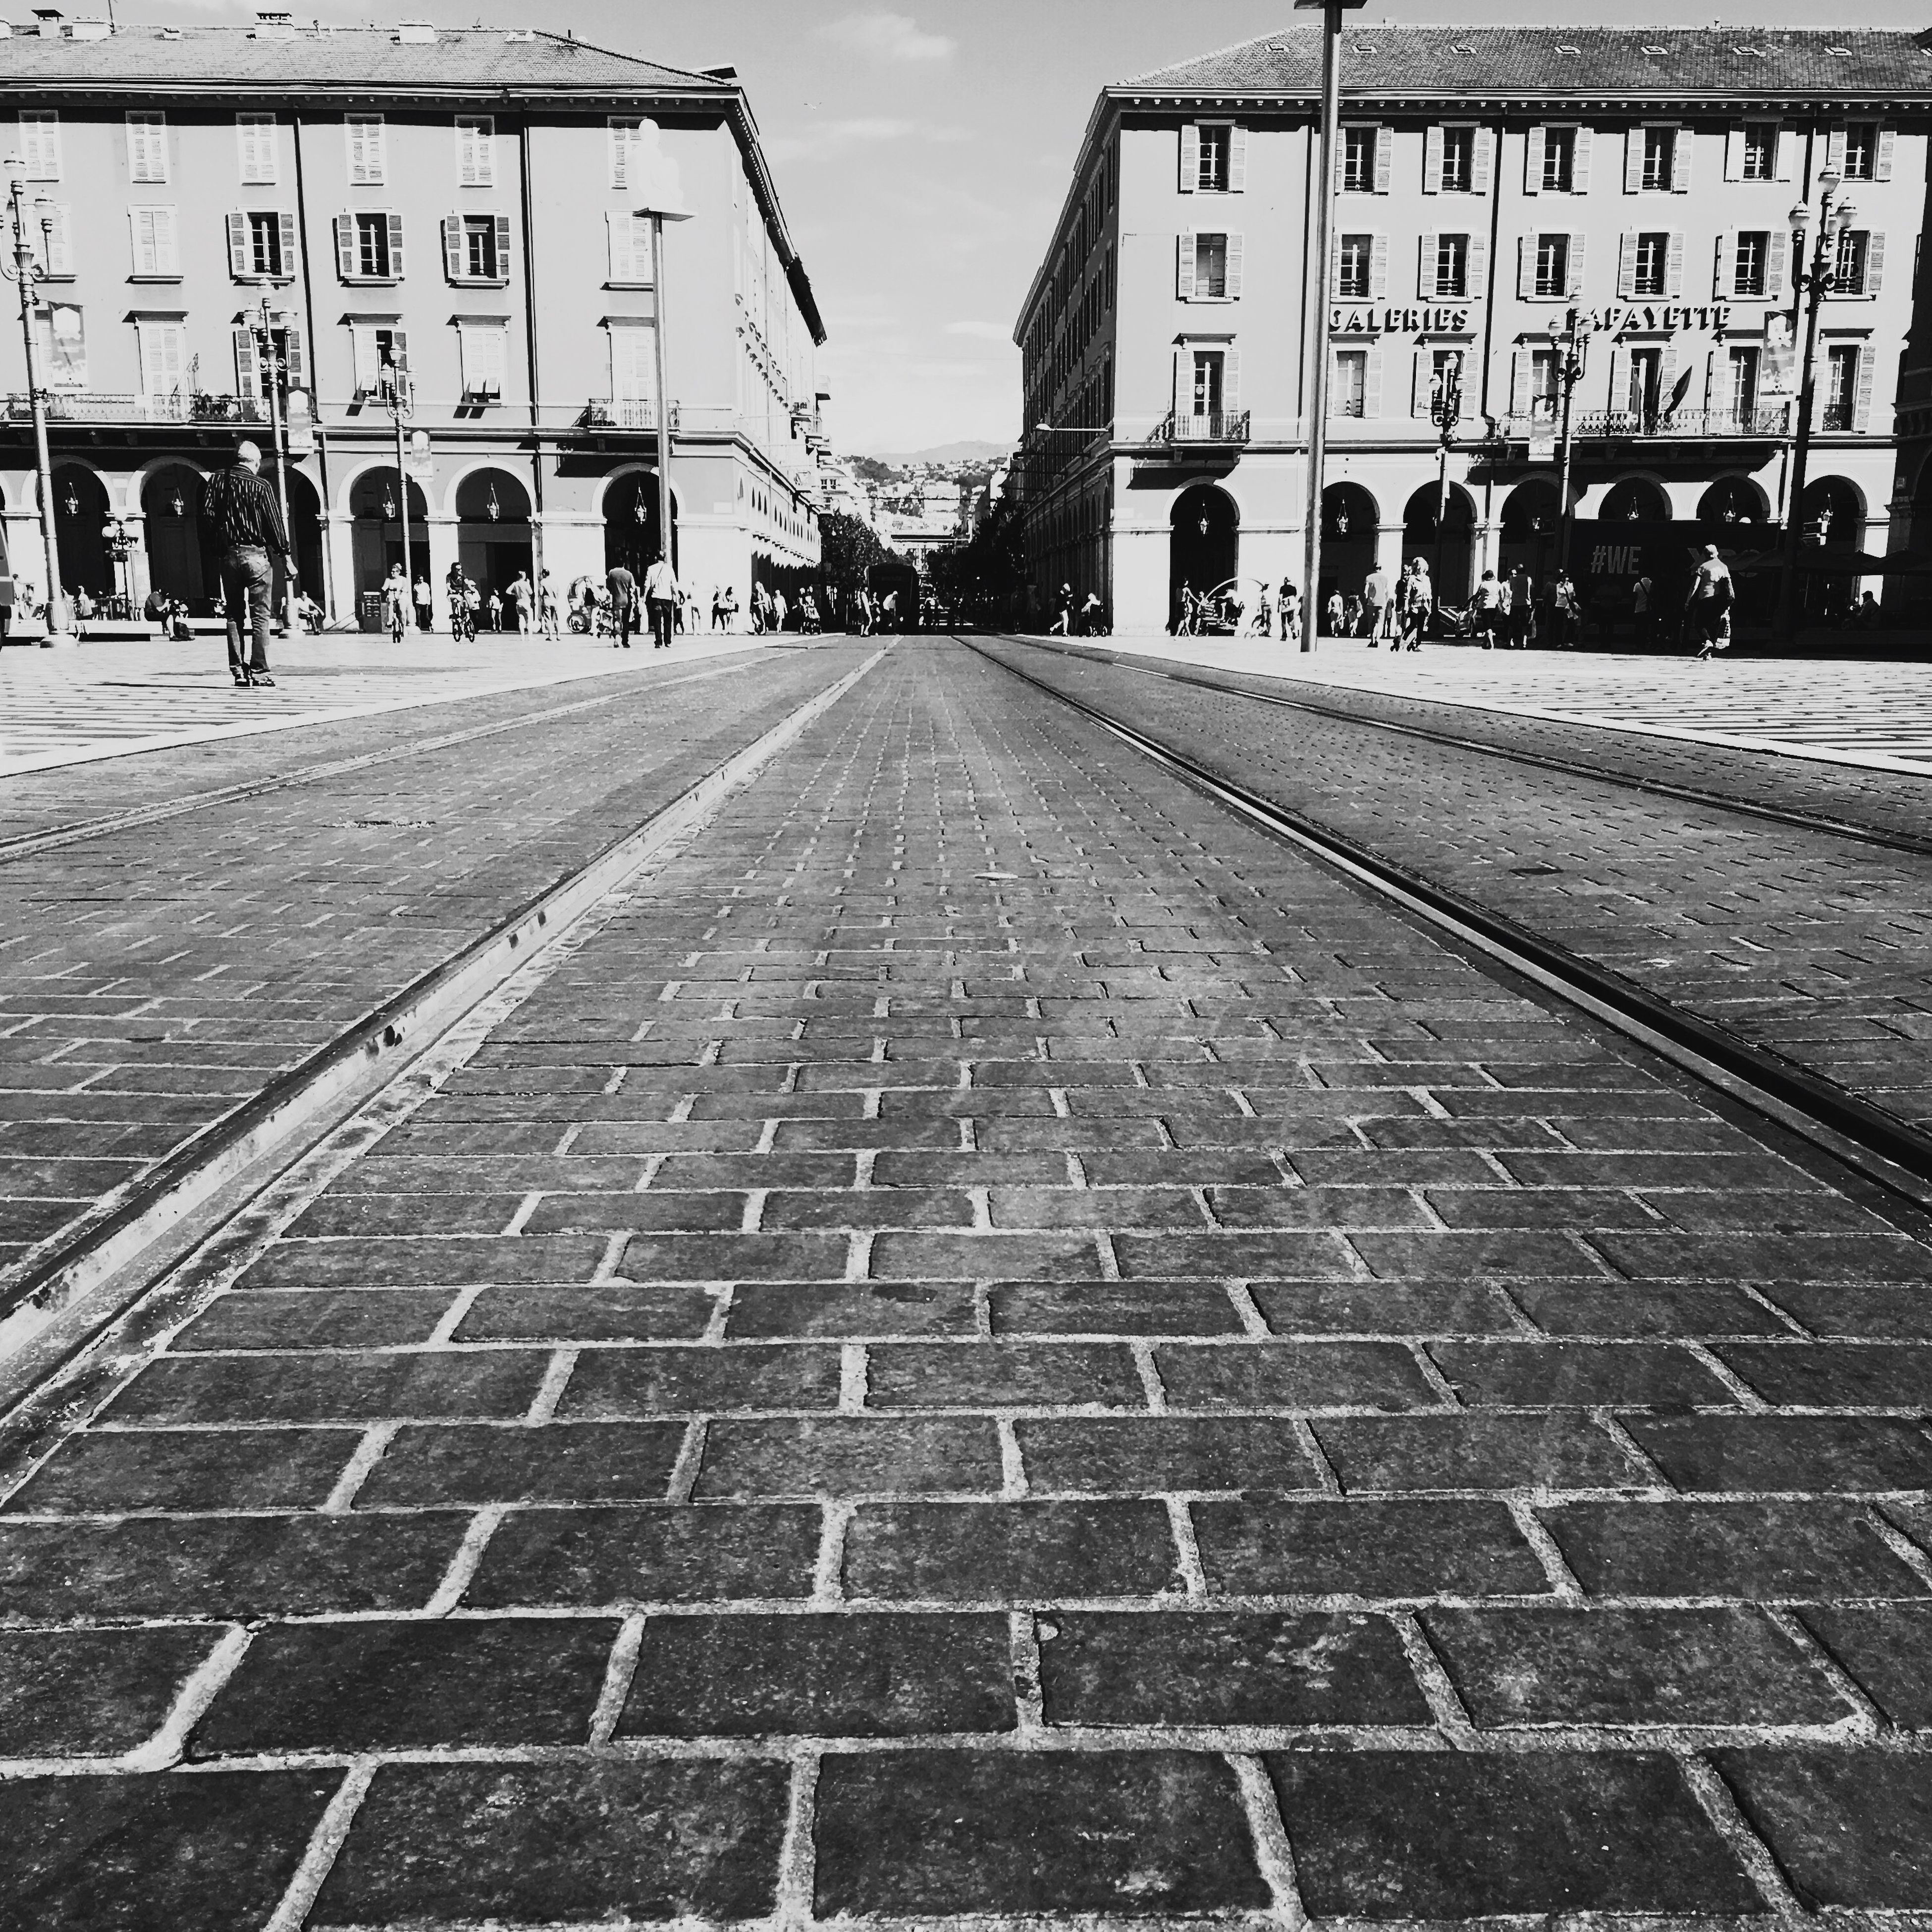 architecture, building exterior, built structure, the way forward, street, city, surface level, mid distance, day, outdoors, footpath, sky, city life, diminishing perspective, long, paving stone, geometric shape, pedestrian walkway